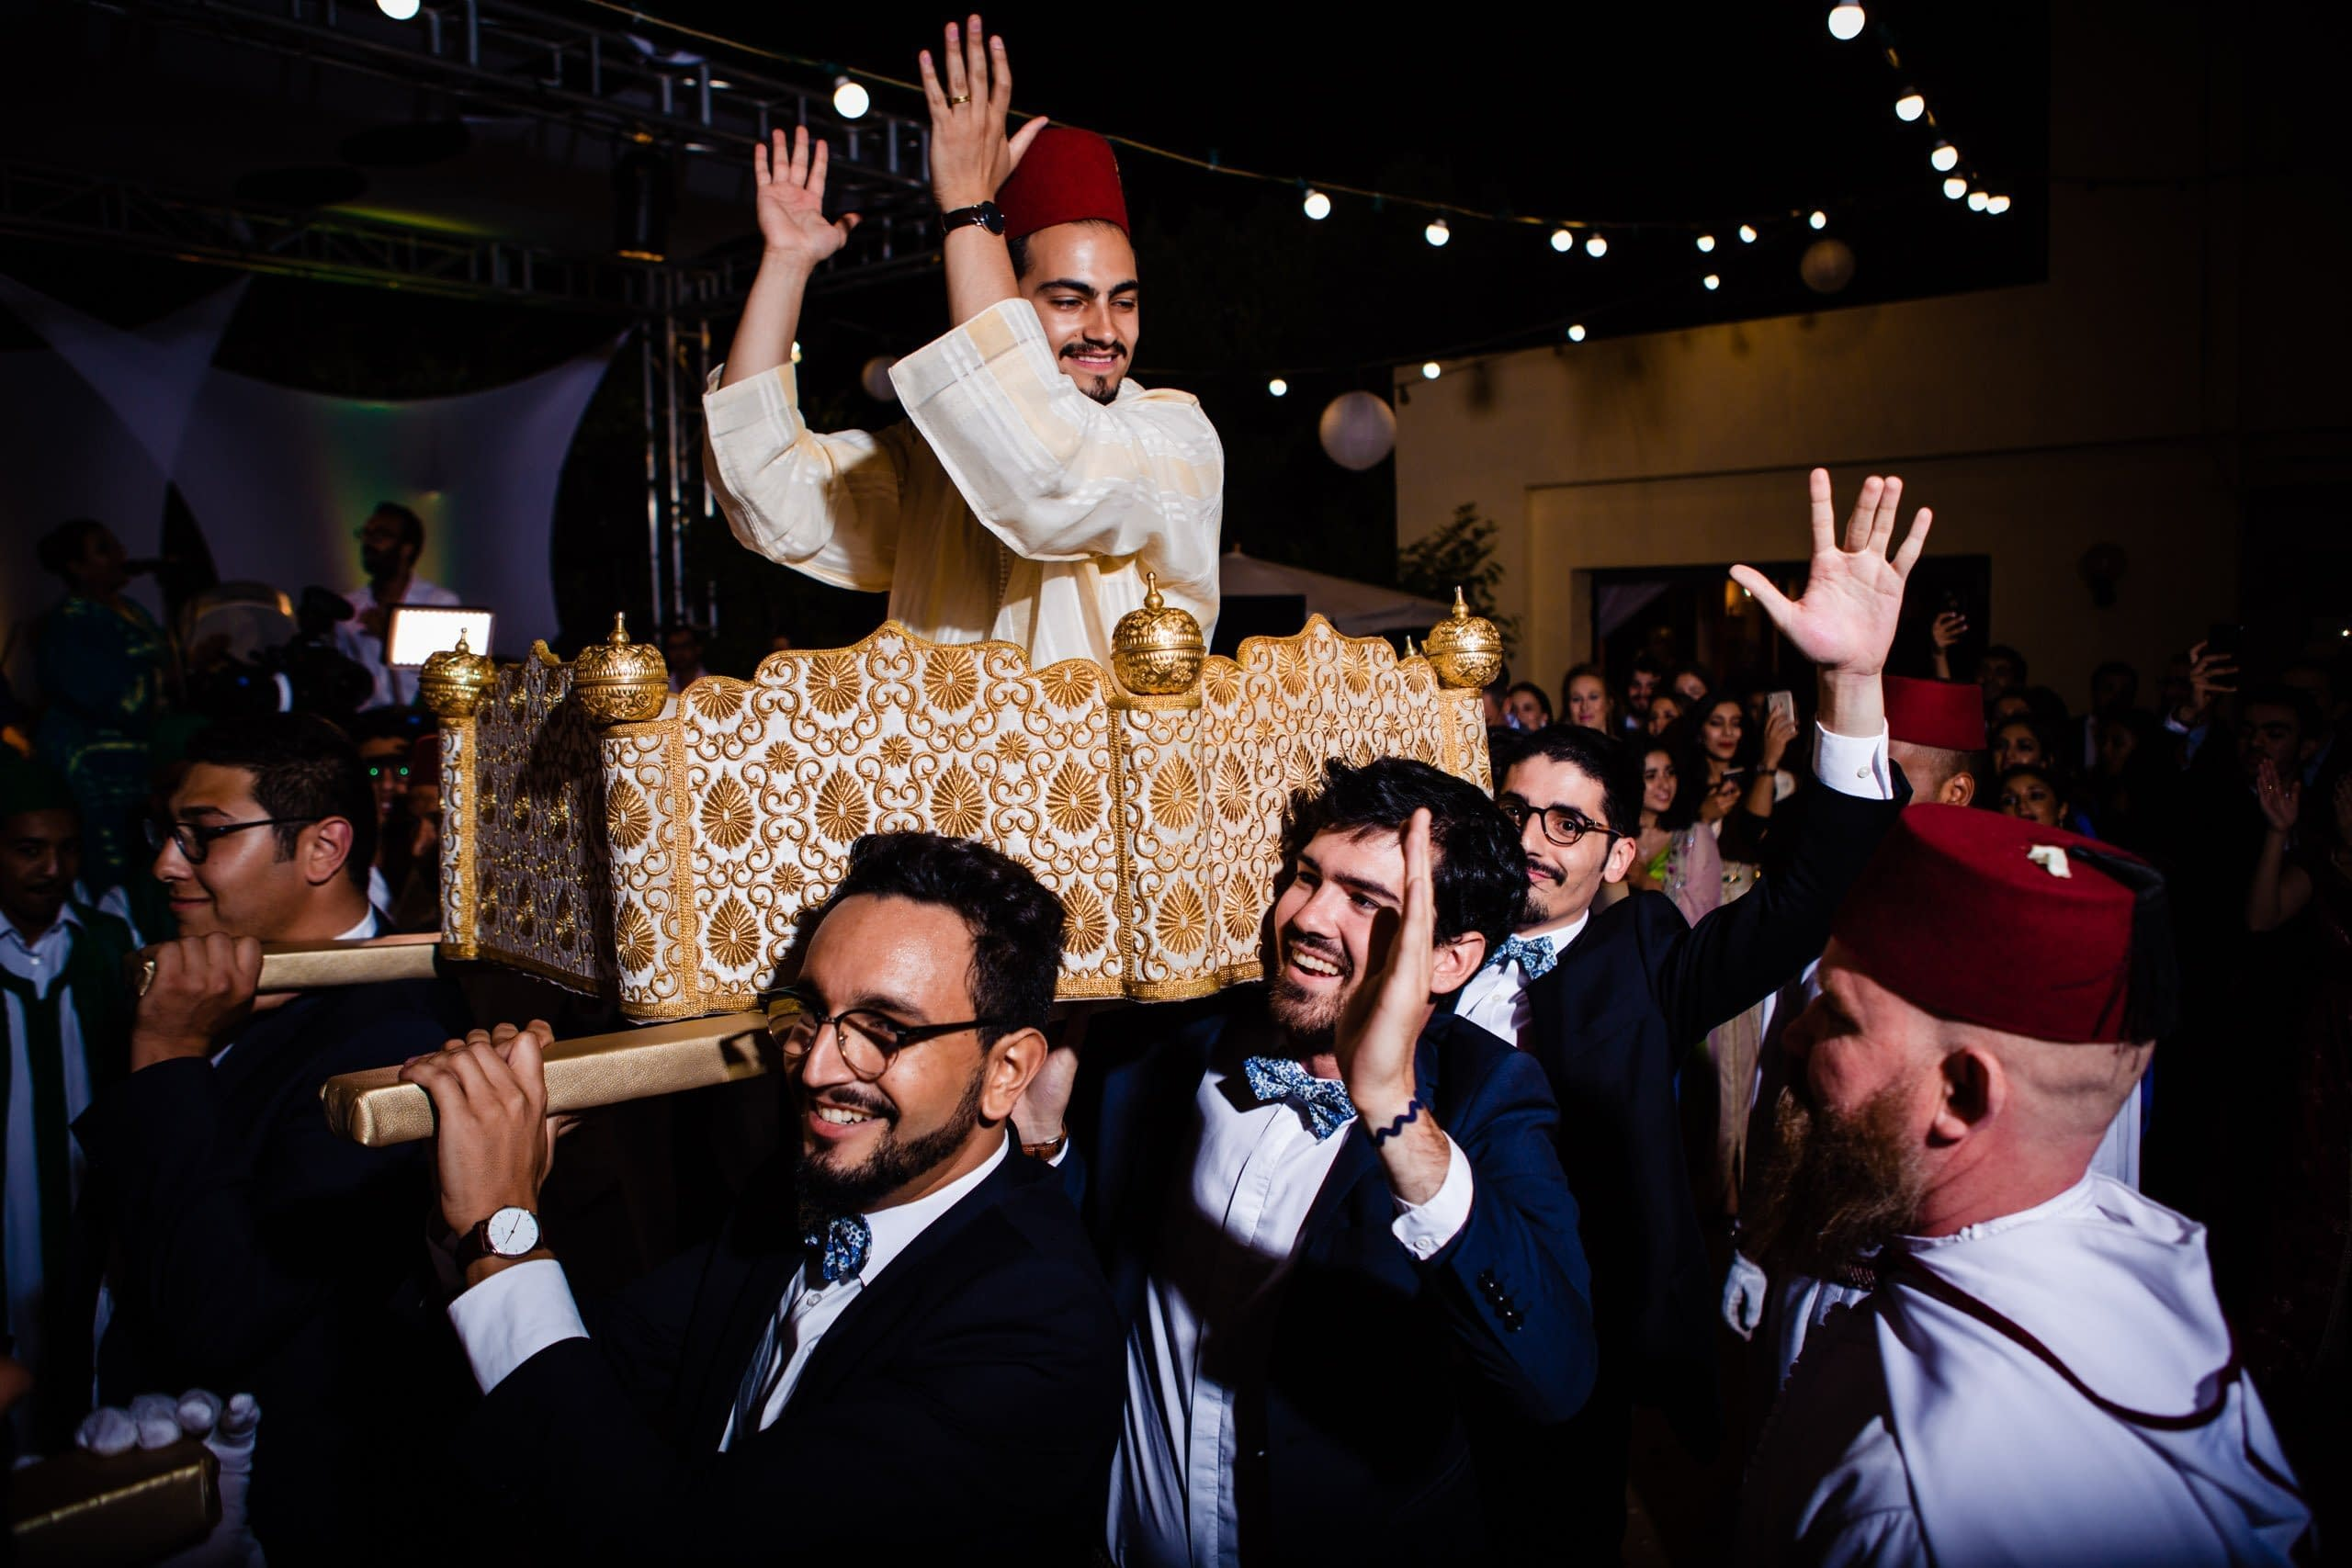 Wedding photography in Rabat for traditional Moroccan wedding